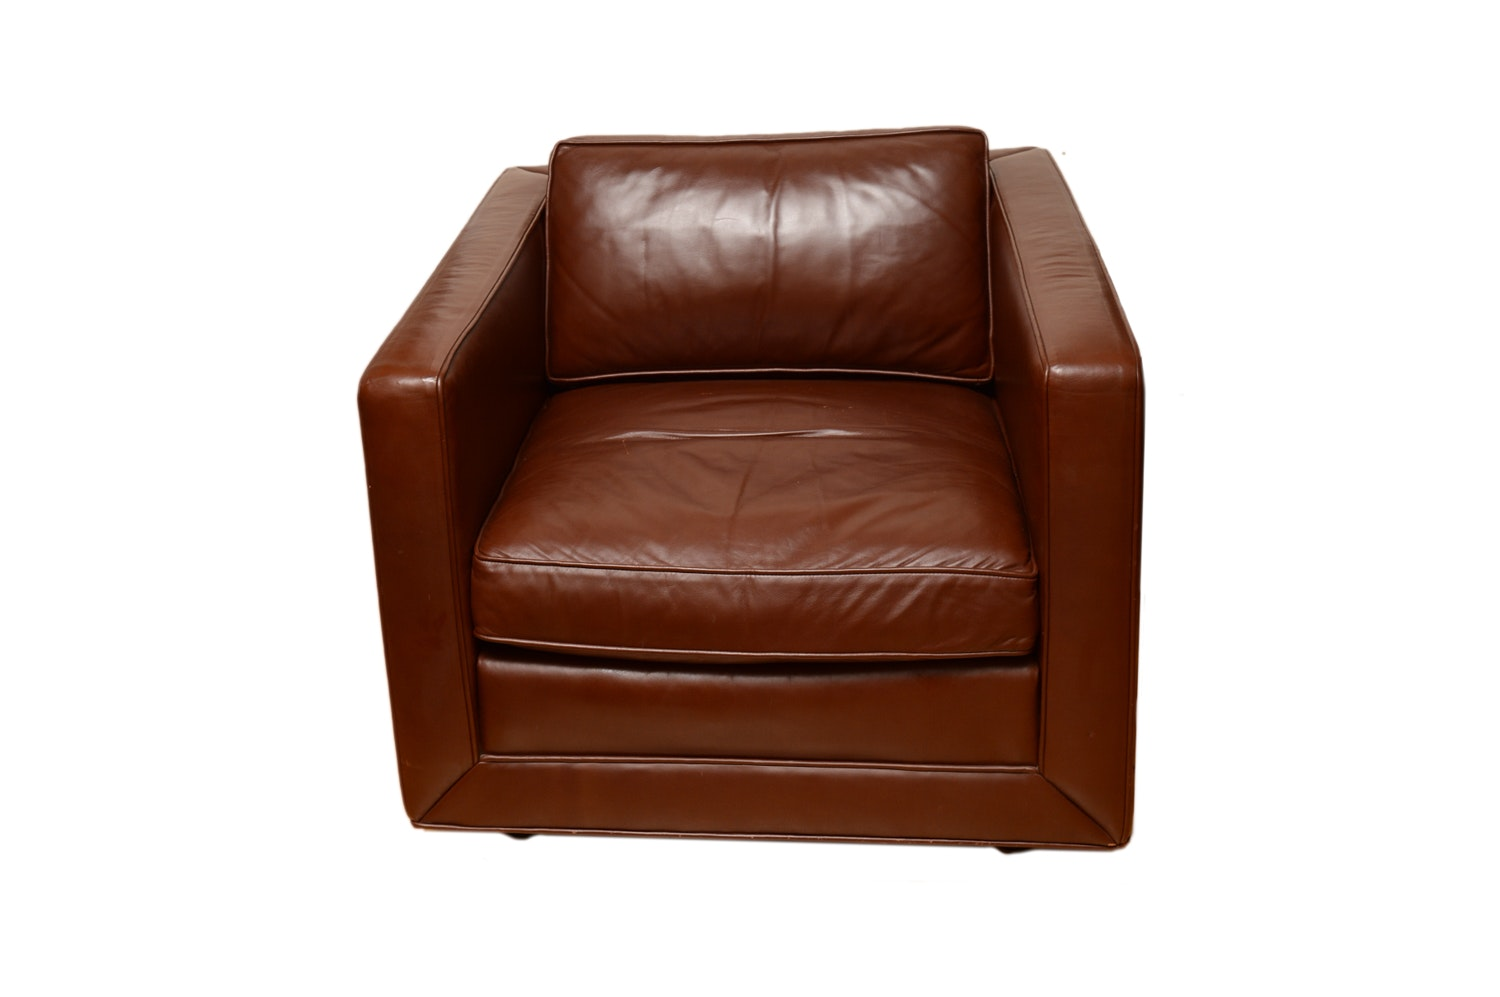 Charmant Brown Faux Leather Club Chair ...